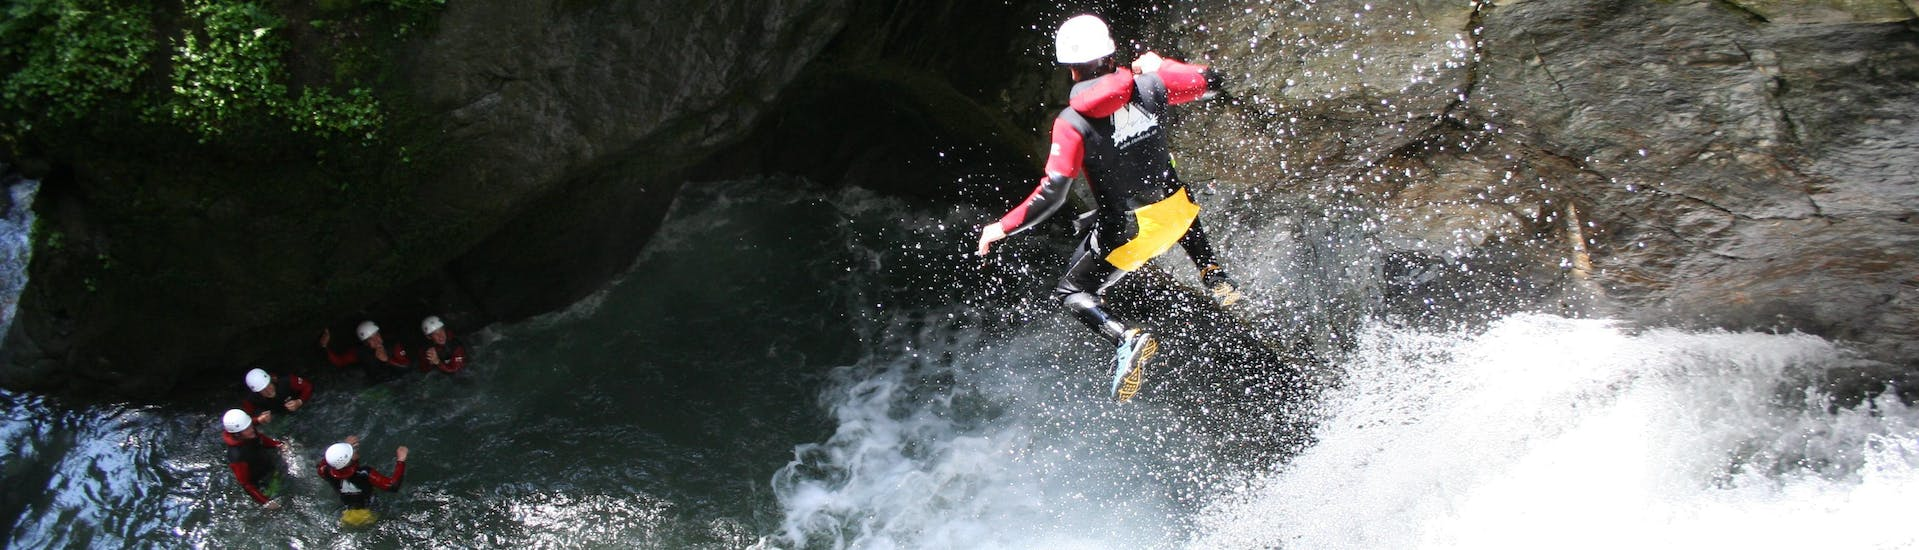 """A participant is jumping into a natural pool during Canyoning """"Extreme"""" - Mittlere & Untere Auerklamm with CanKick Ötztal."""